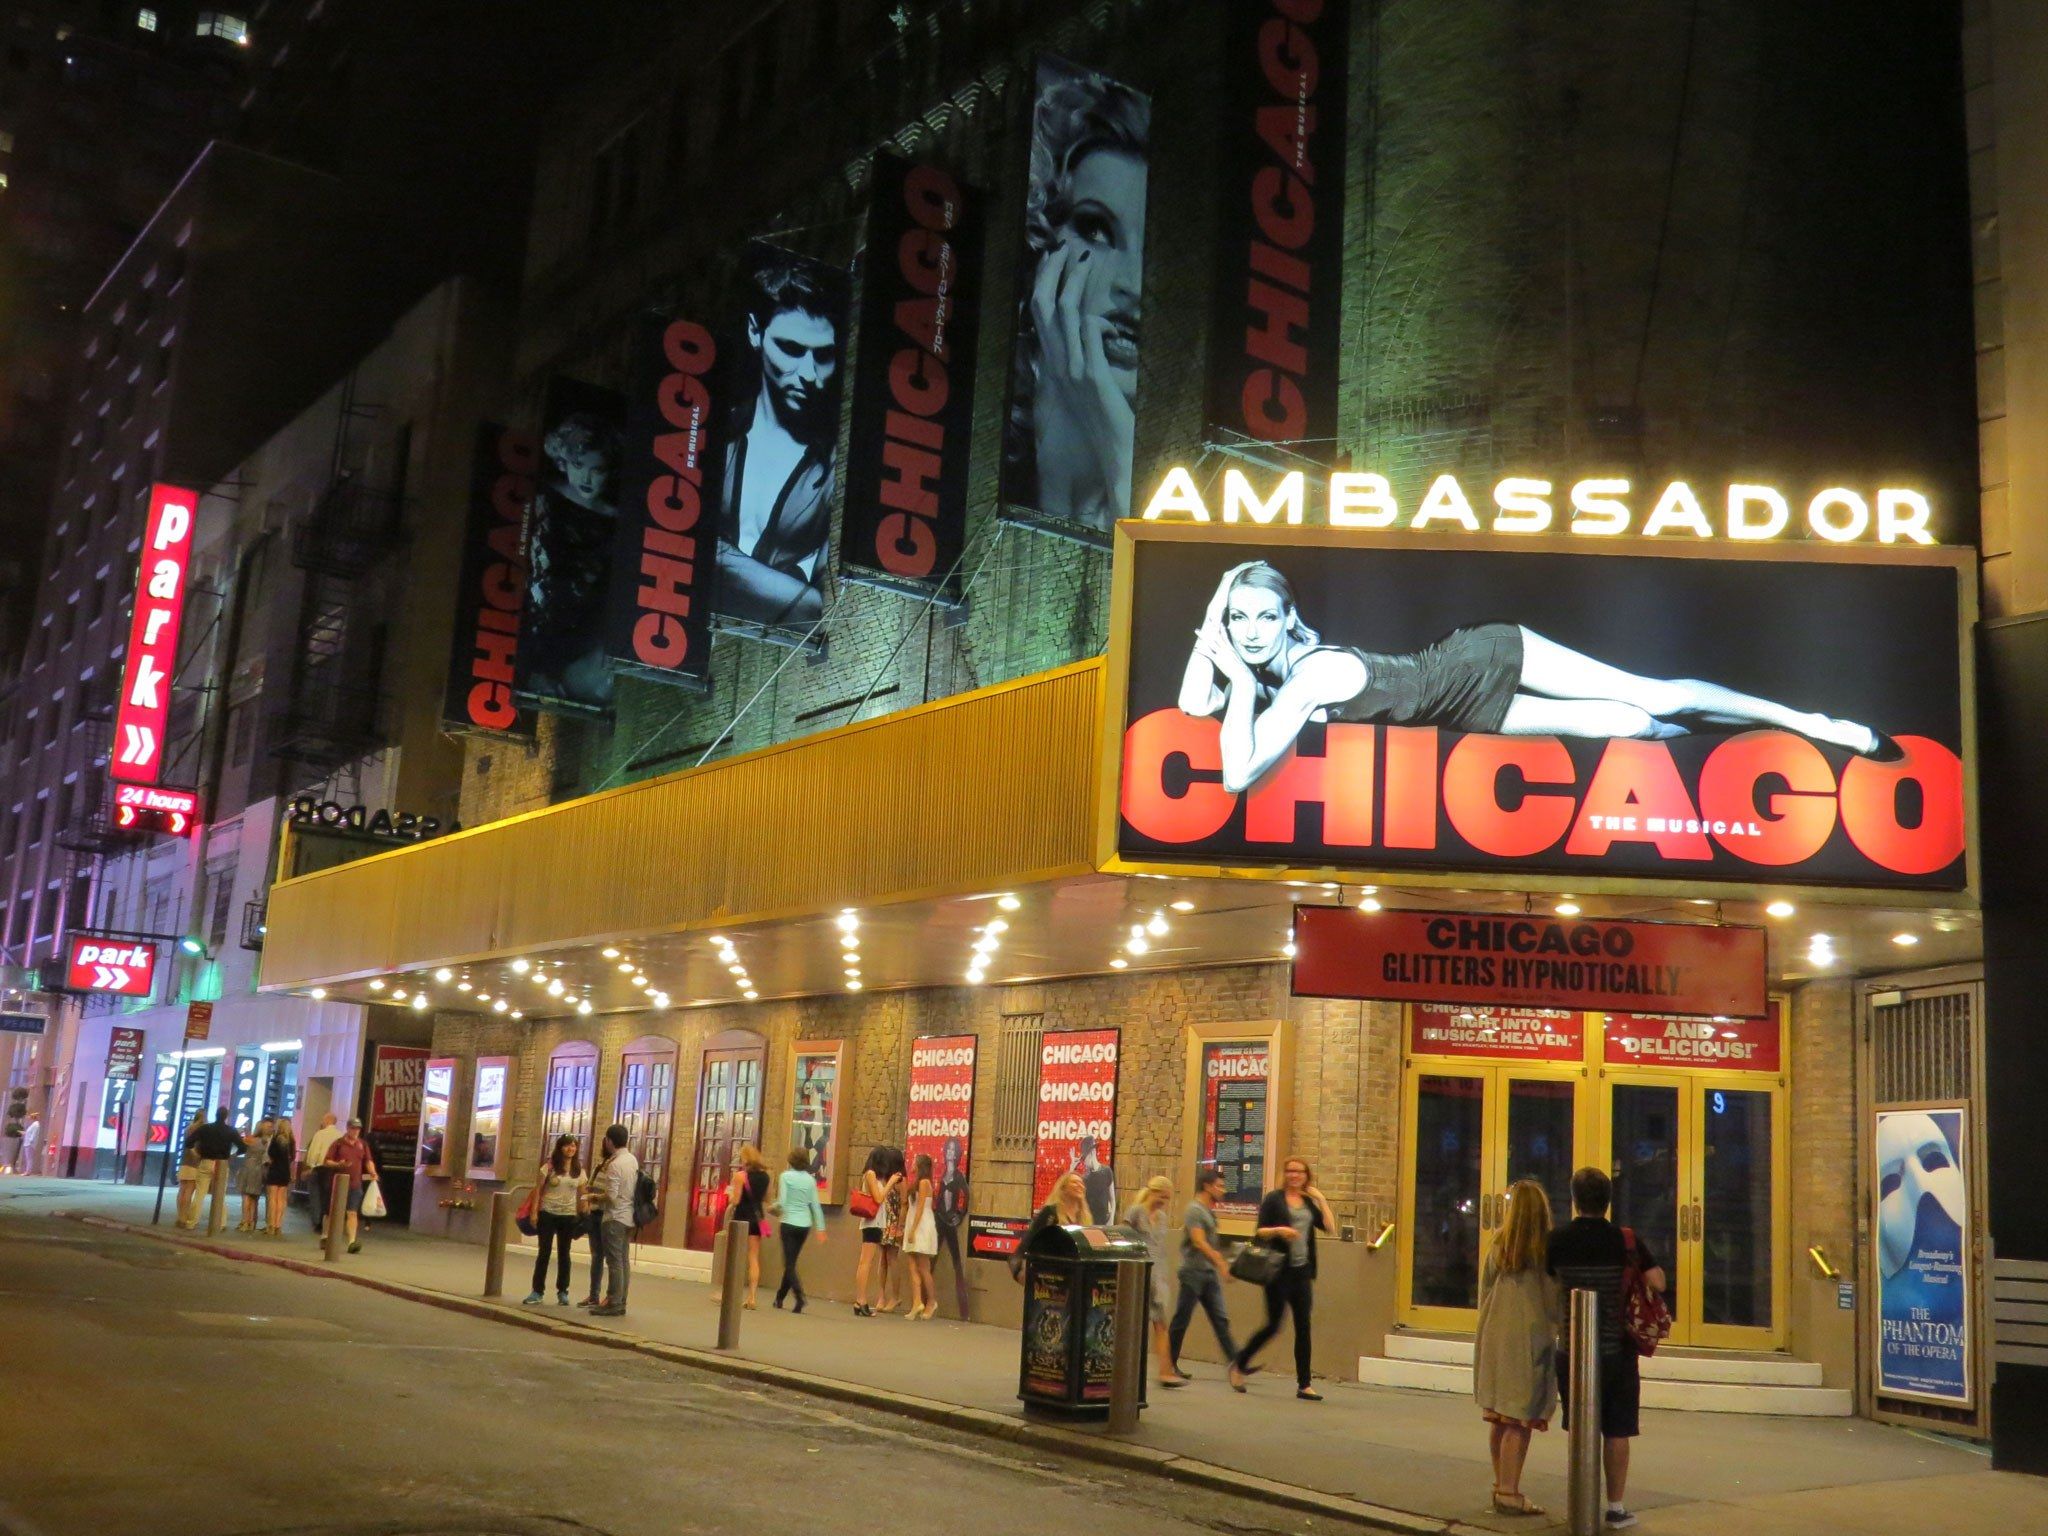 Chicago at Ambassador Theatre